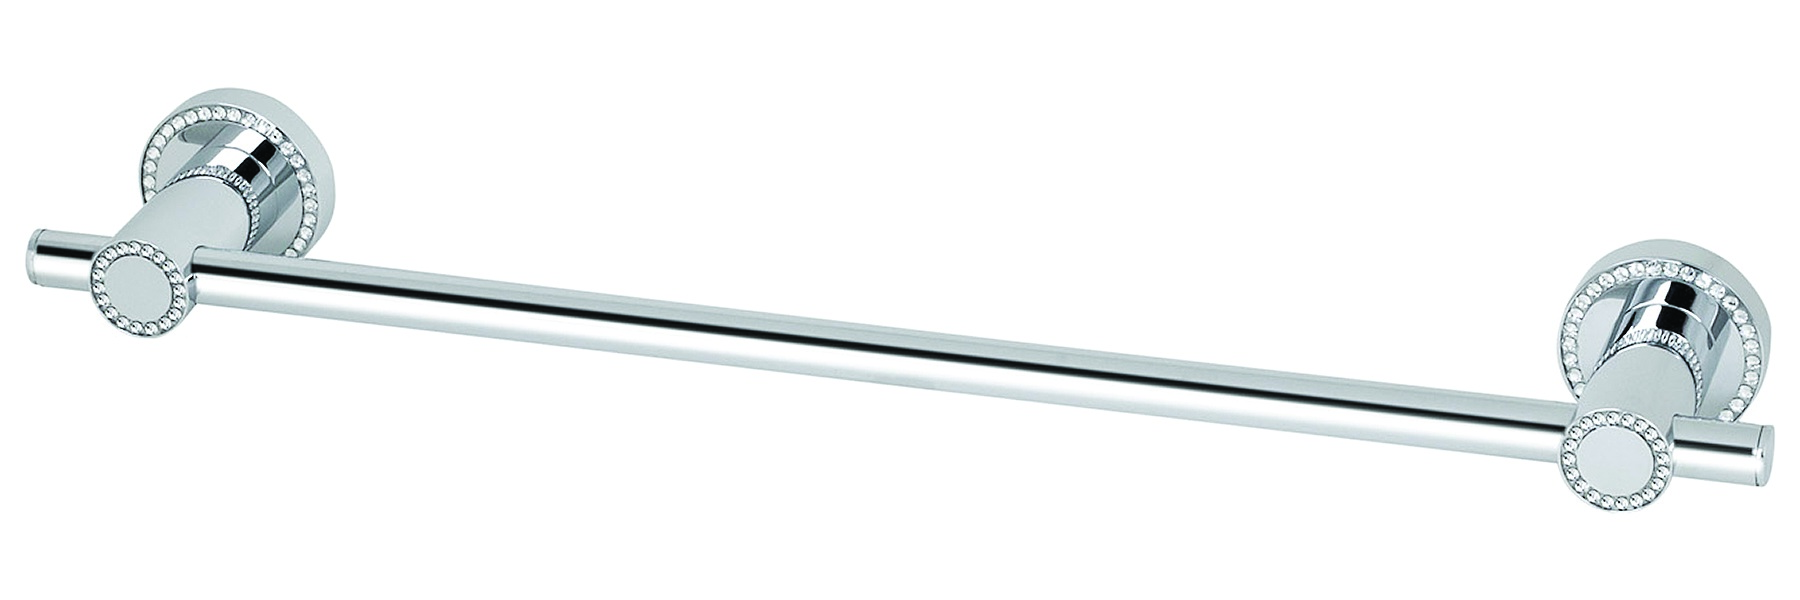 "Topex Hardware A101030201 18"" Towel Bar Swarovski Crystals - Chrome"